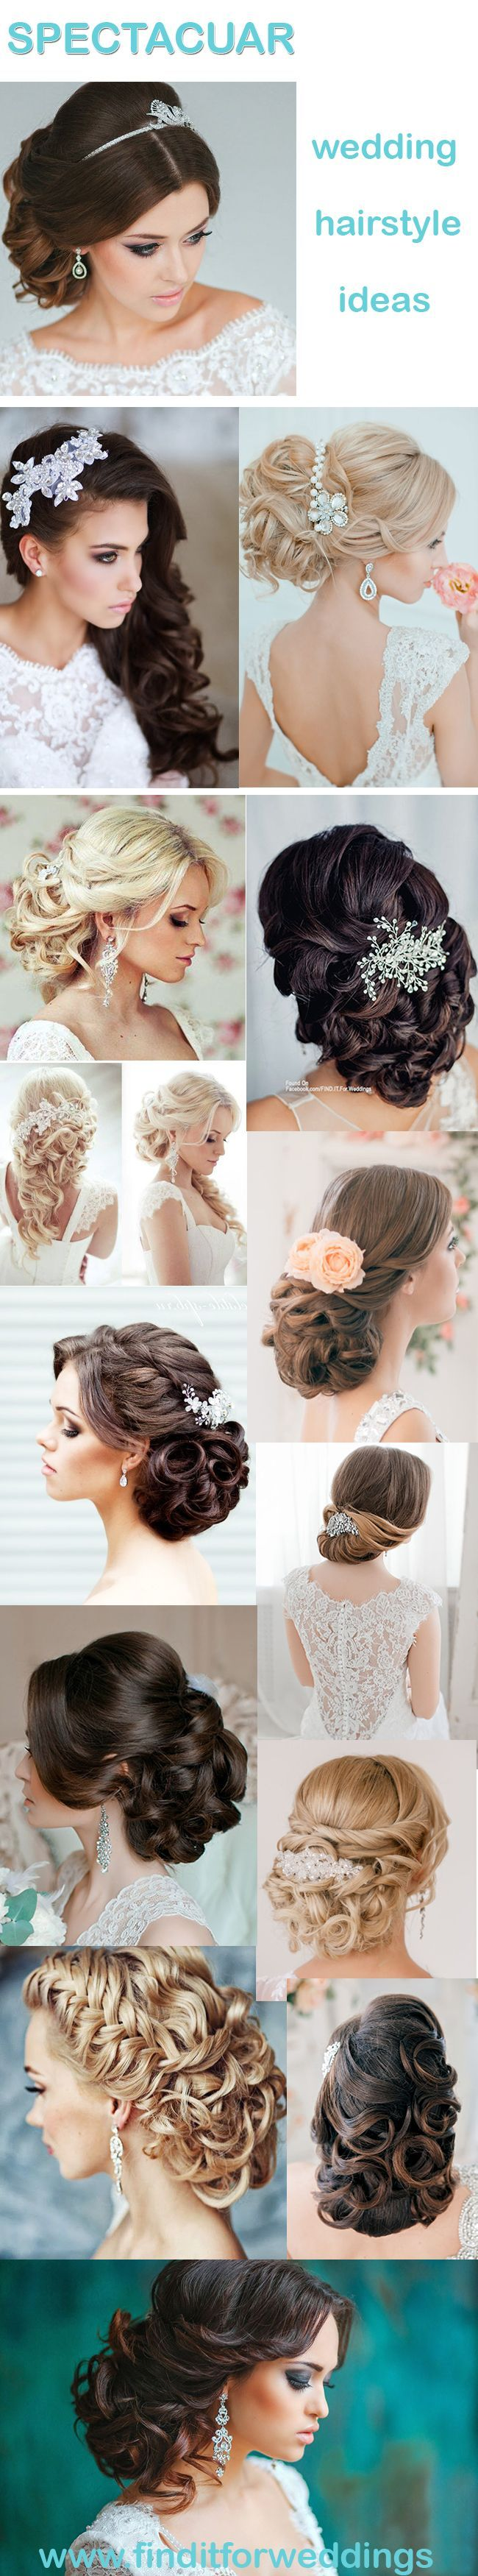 141 best Hair images on Pinterest